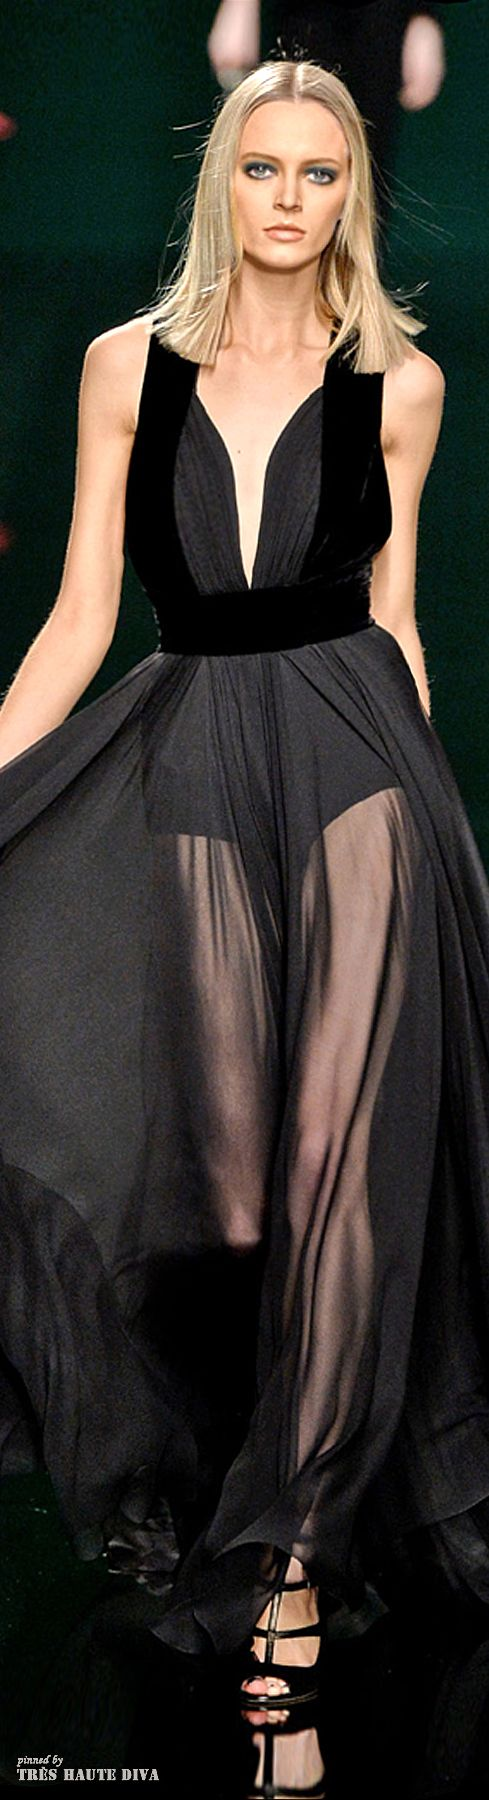 Paris Fashion Week Elie Saab Fall/Winter 2014 RTW